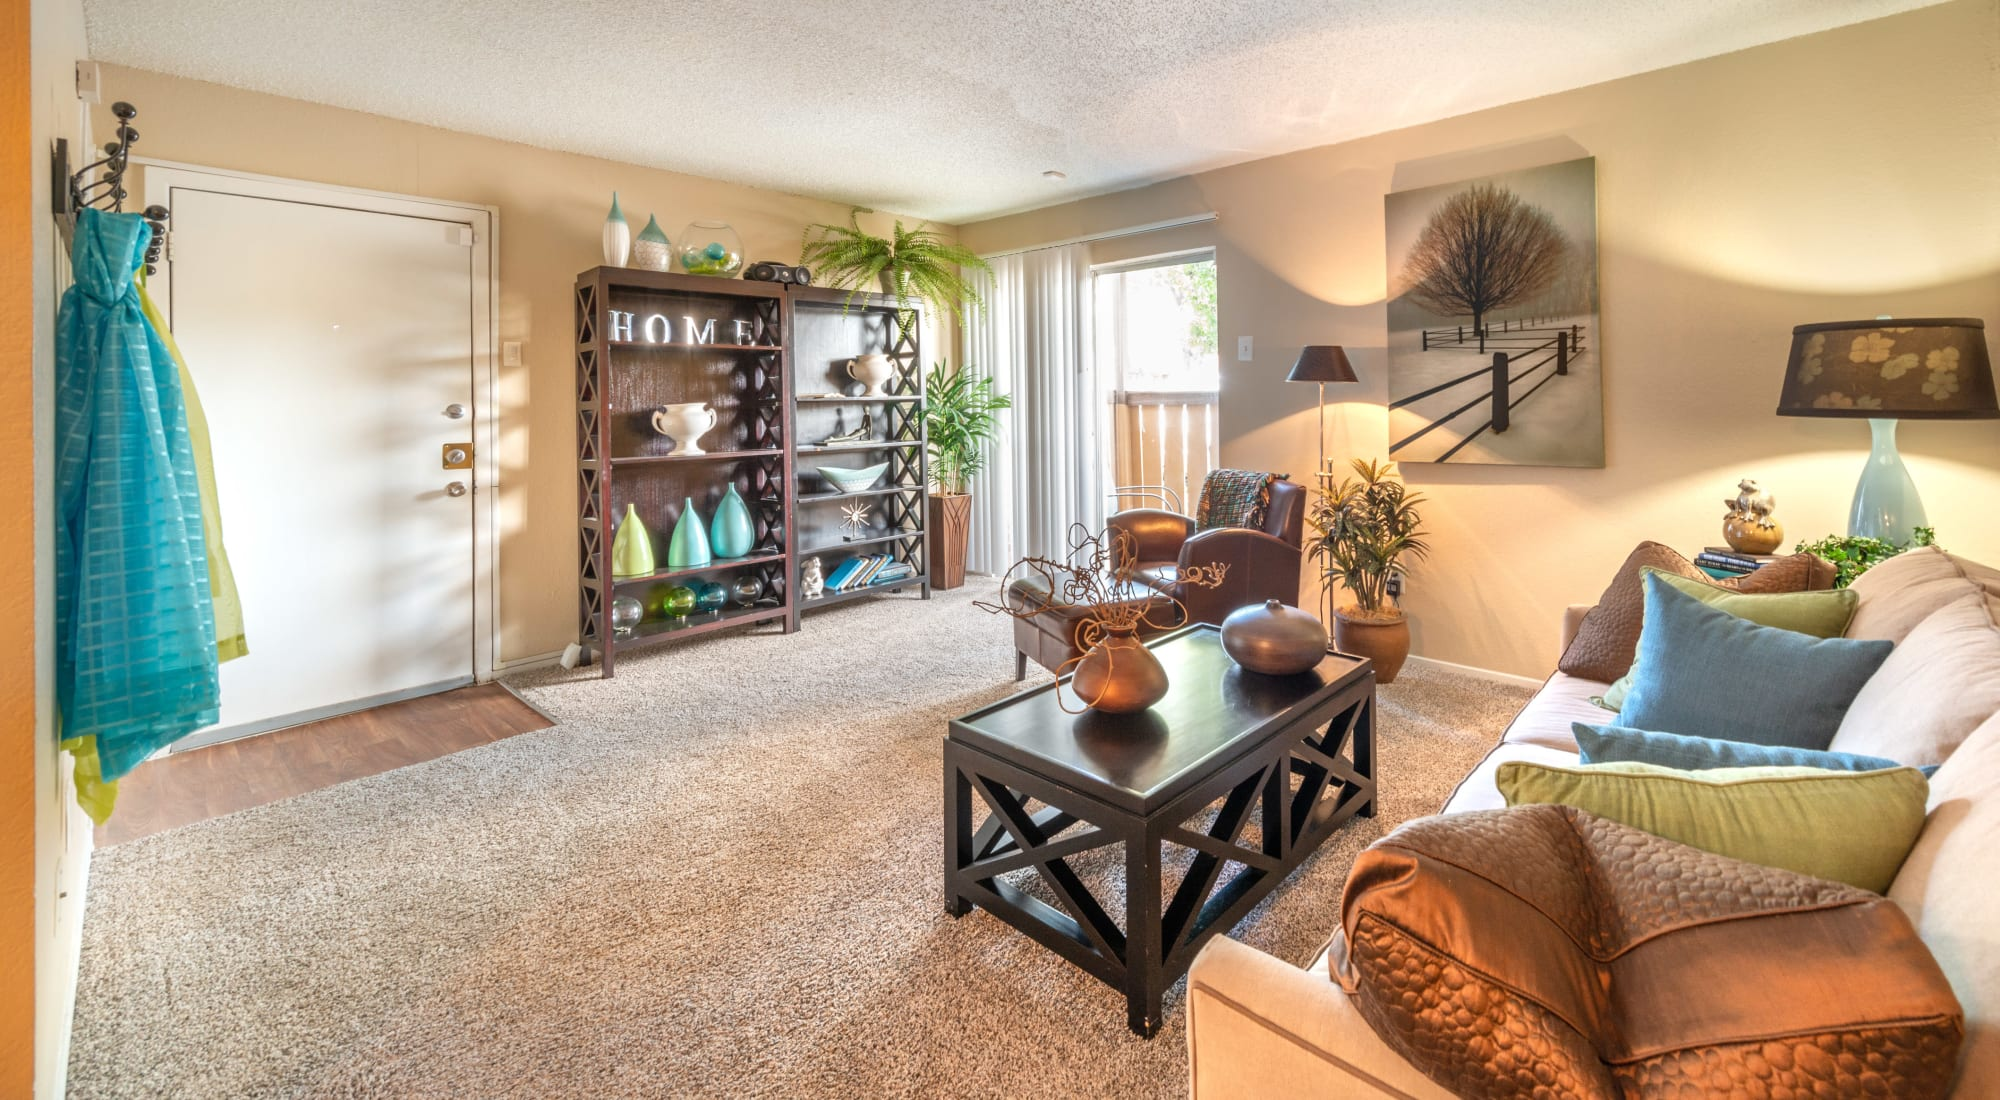 Schedule your tour of 8500 Harwood Apartment Homes in North Richland Hills, Texas